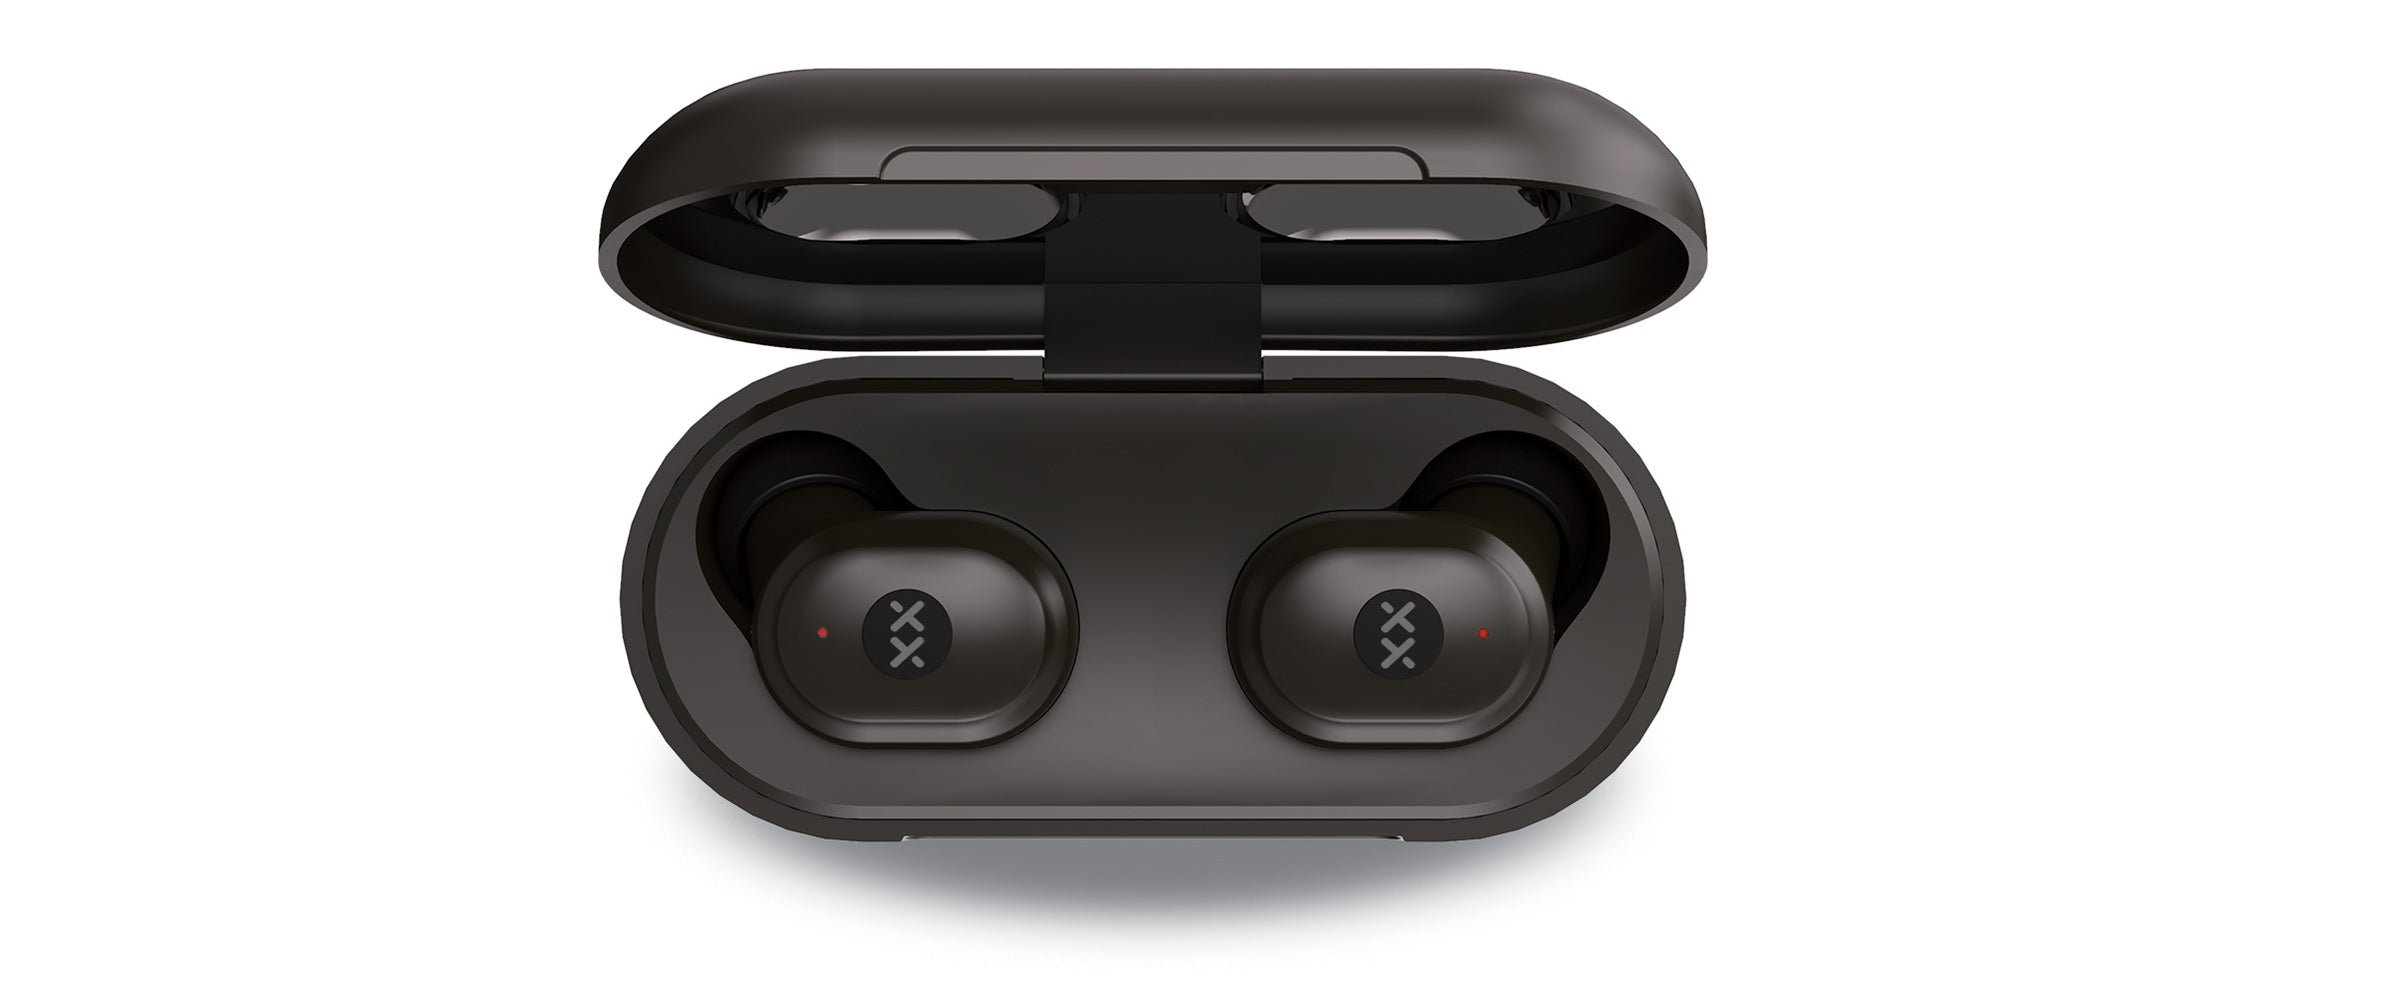 Streambuds LX true wireless earbuds in charging case